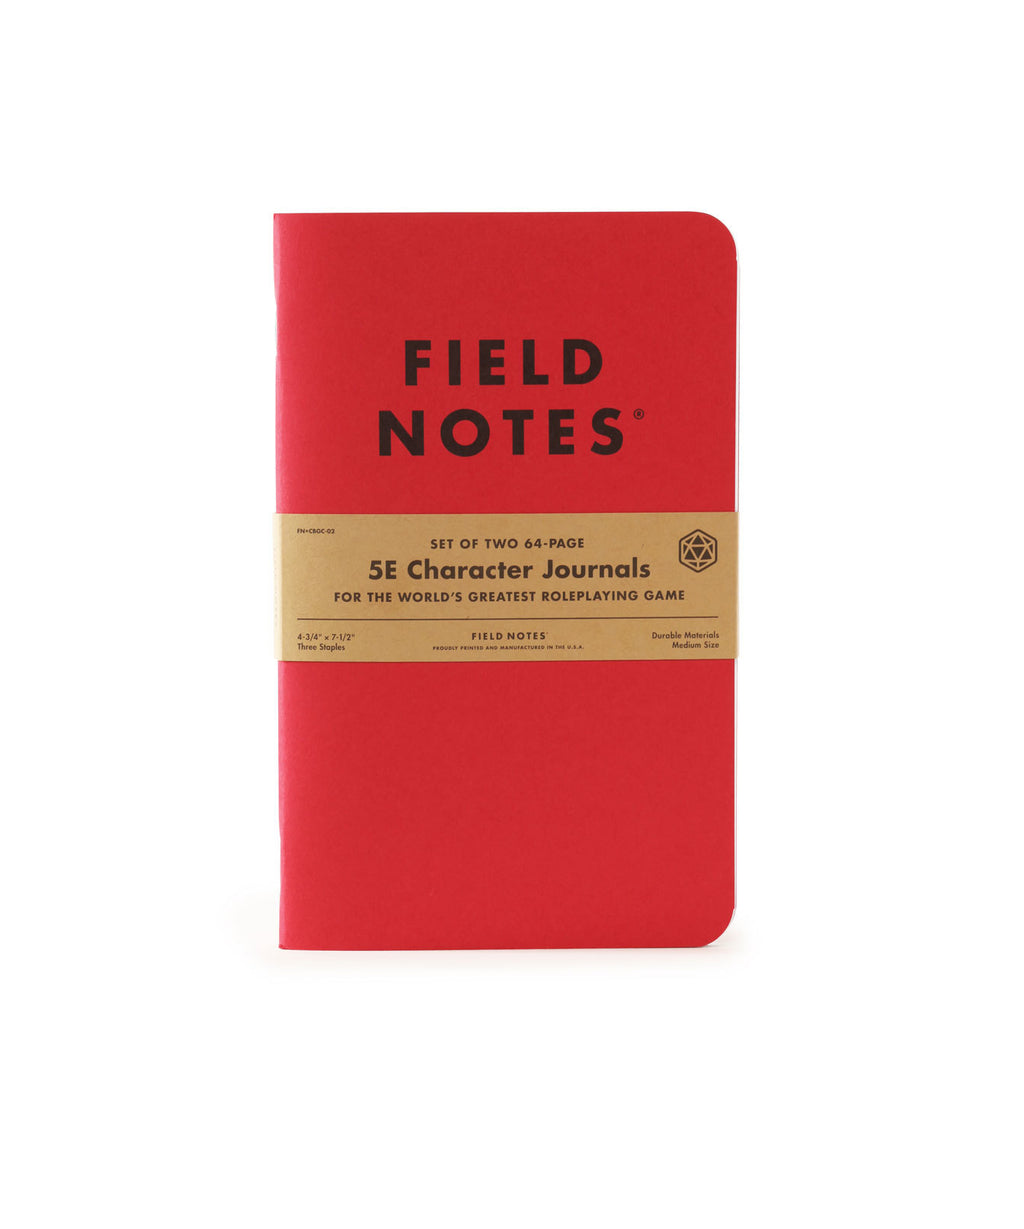 Field Notes 5E Character Journals